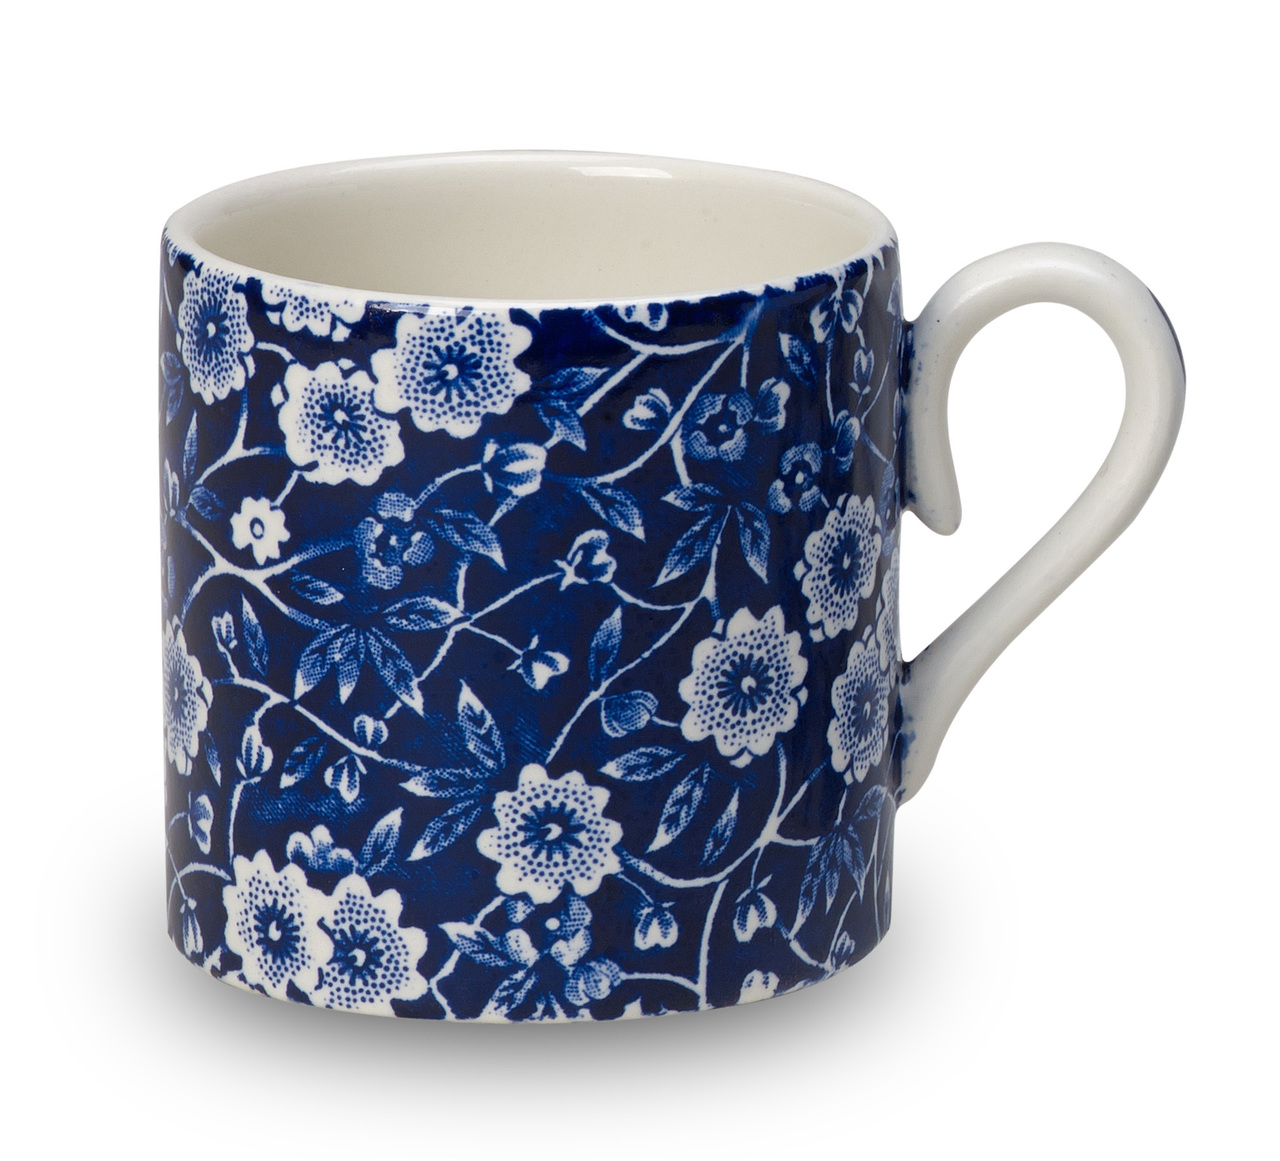 Burleigh Blue Calico | Beautiful china to adorn your tablescapes and add to your Sasha Nicholas wedding & gift registry